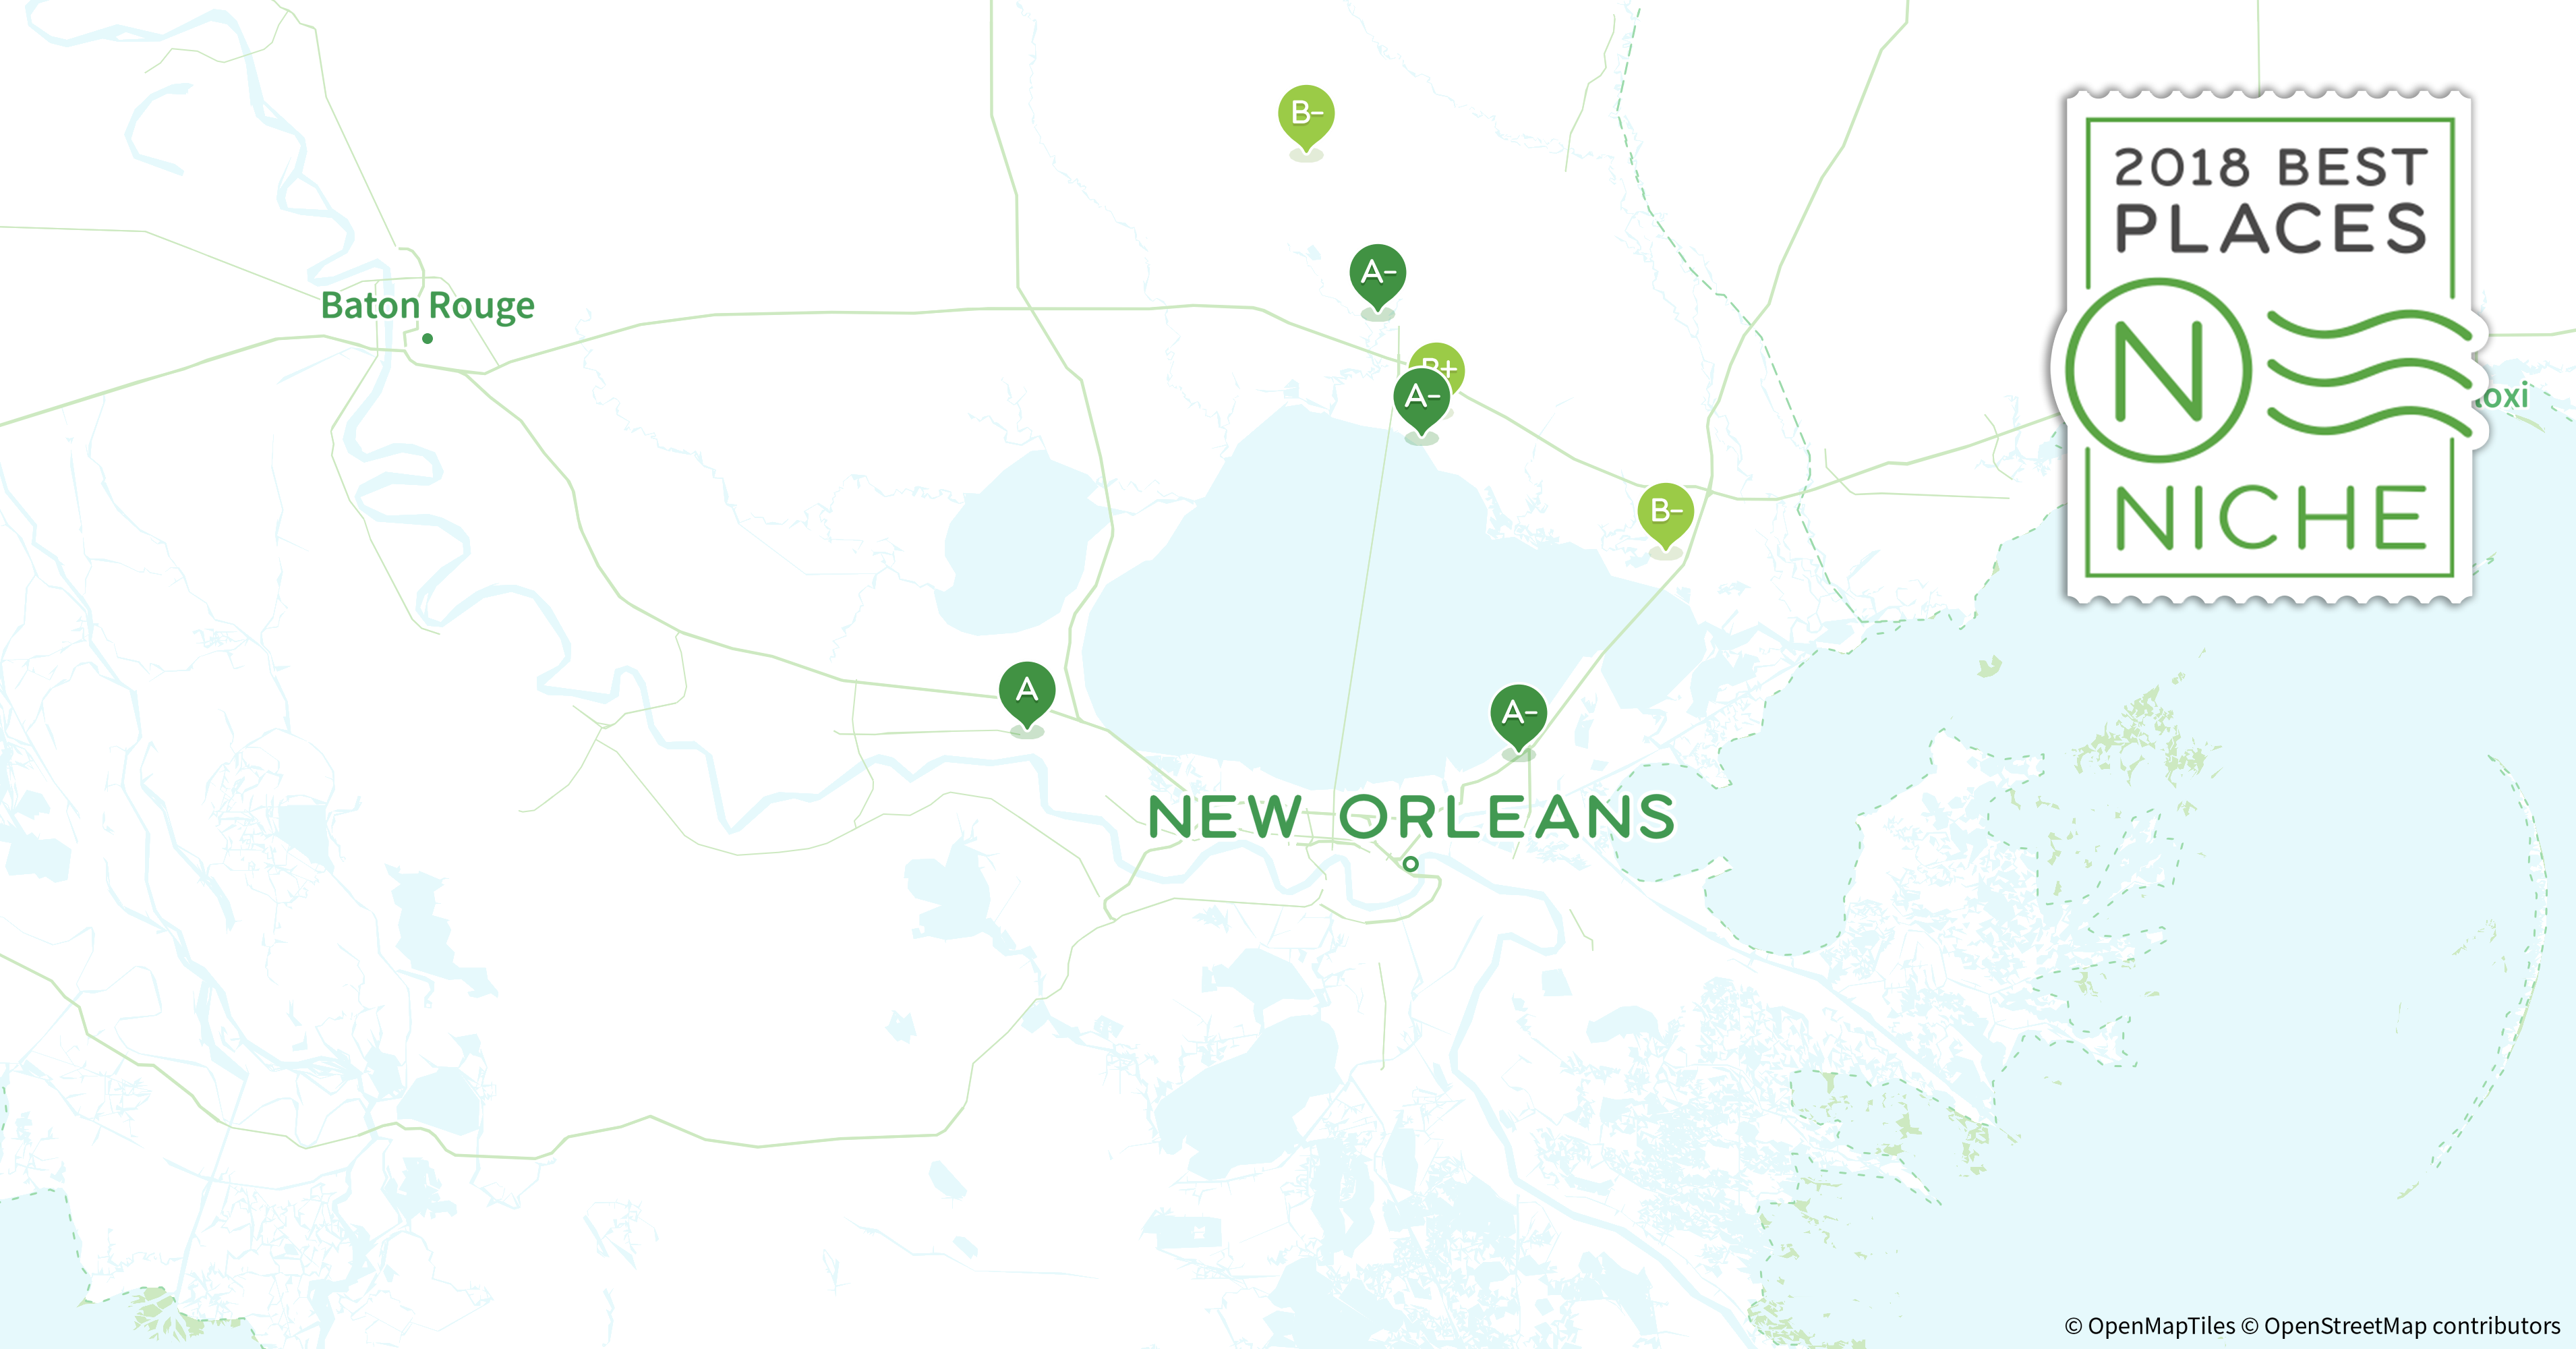 2018 Best Neighborhoods to Live in New Orleans Area - Niche New Orleans Police Districts Map on new orleans school districts map, new orleans weather, new orleans districts and wards, new orleans historic districts map, orleans parish district map, new orleans neighborhood boundaries, new orleans 9th ward today, new orleans municipal districts map, new orleans prohibition, new orleans council districts map, new orleans maps with landmarks, new orleans garden district tour, new orleans neighborhood guide, new orleans art district, new orleans fire department, chicago wards and precincts map, new orleans ward boundaries, new orleans wards and precincts, arizona house districts map, fdot district 3 map,